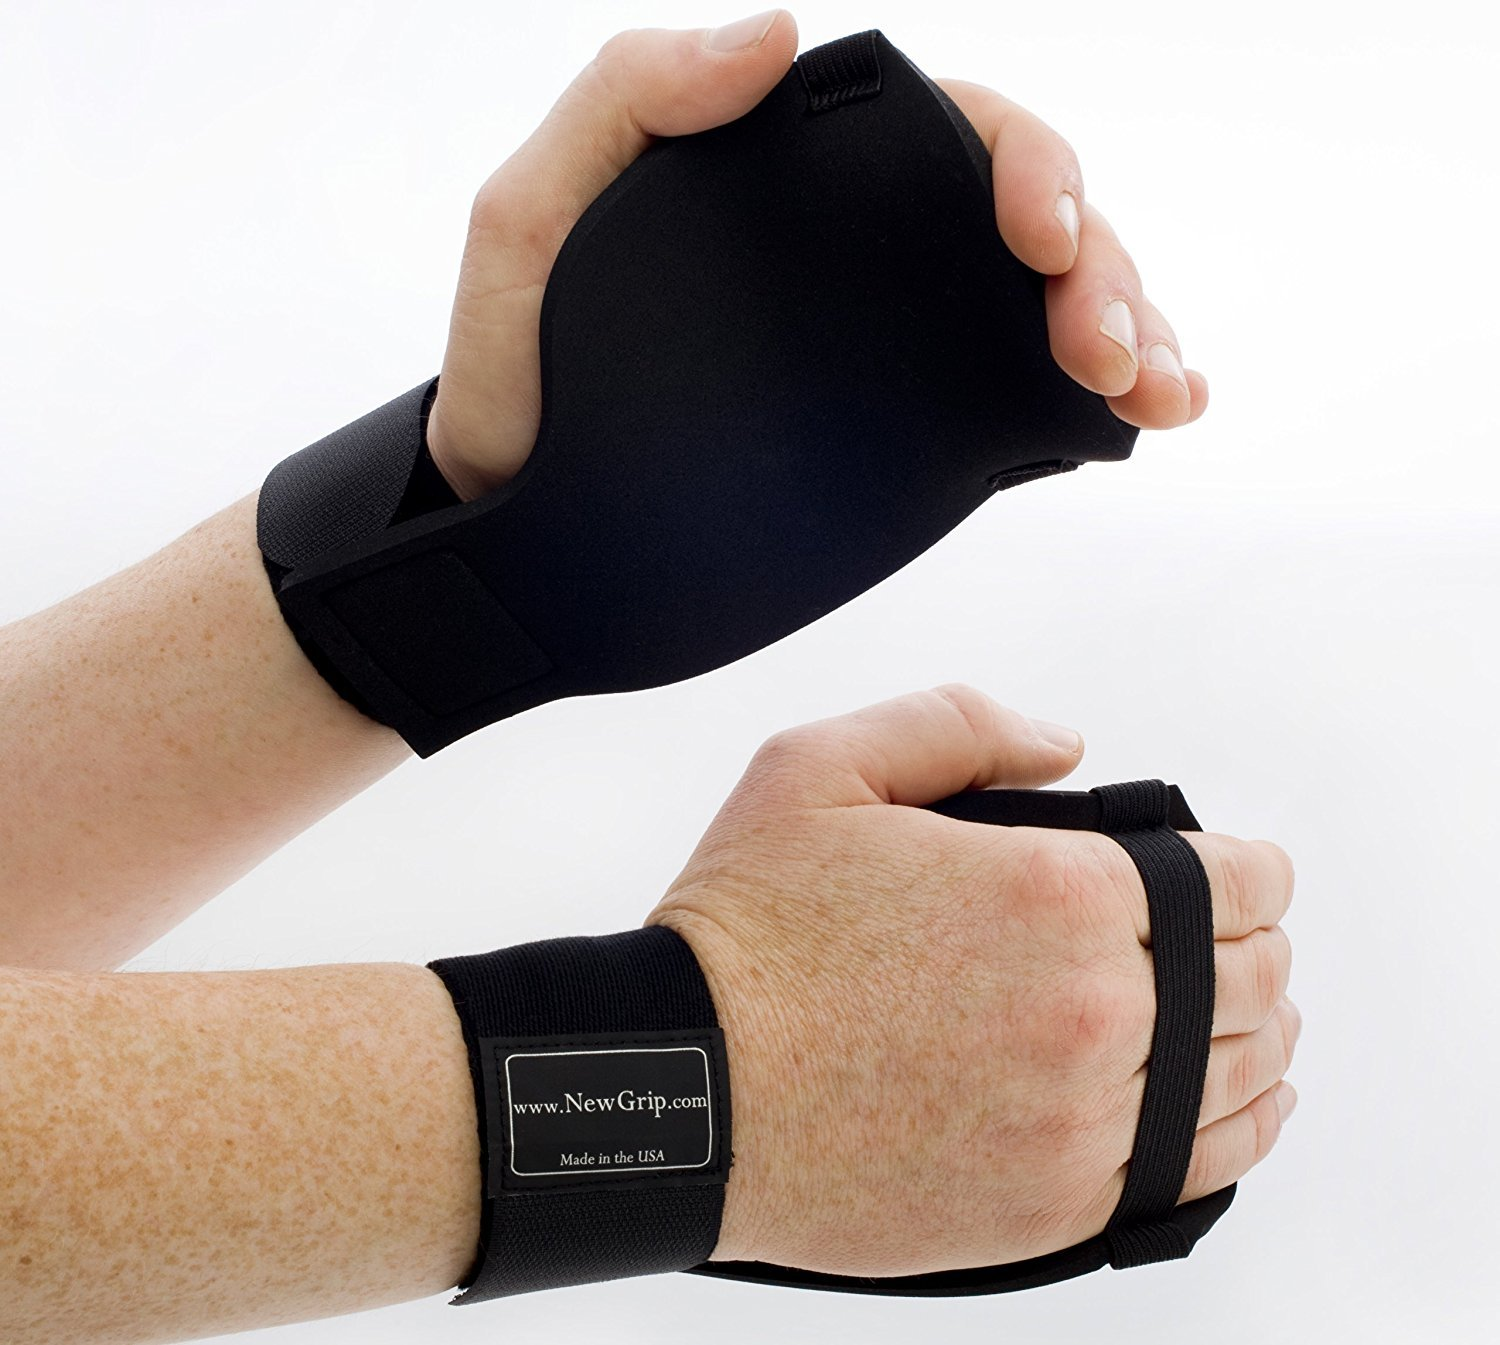 New ProductGym Gloves - Hand Protection for CrossFit, Weight Lifting, Pull-Ups & Rowing